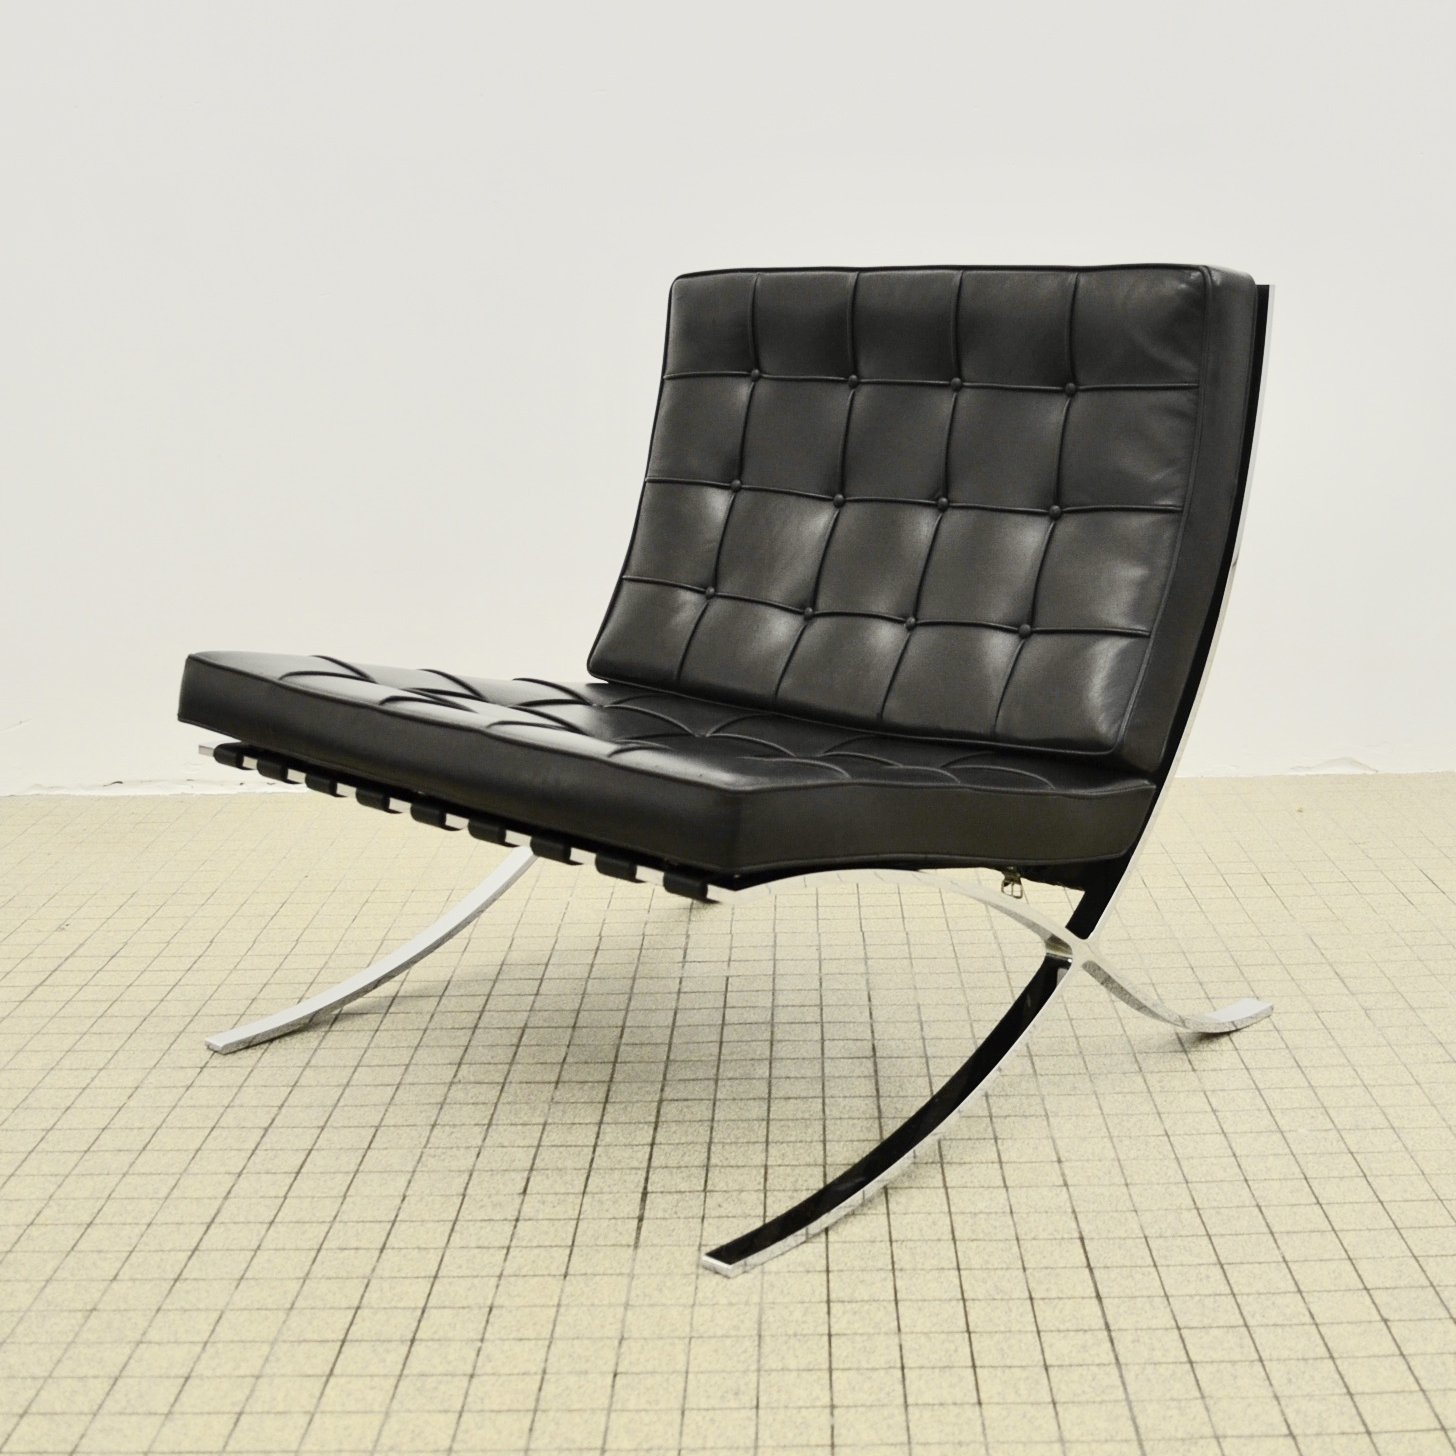 Vintage Knoll Barcelona Lounge Chair By Ludwig Mies Van Der Rohe